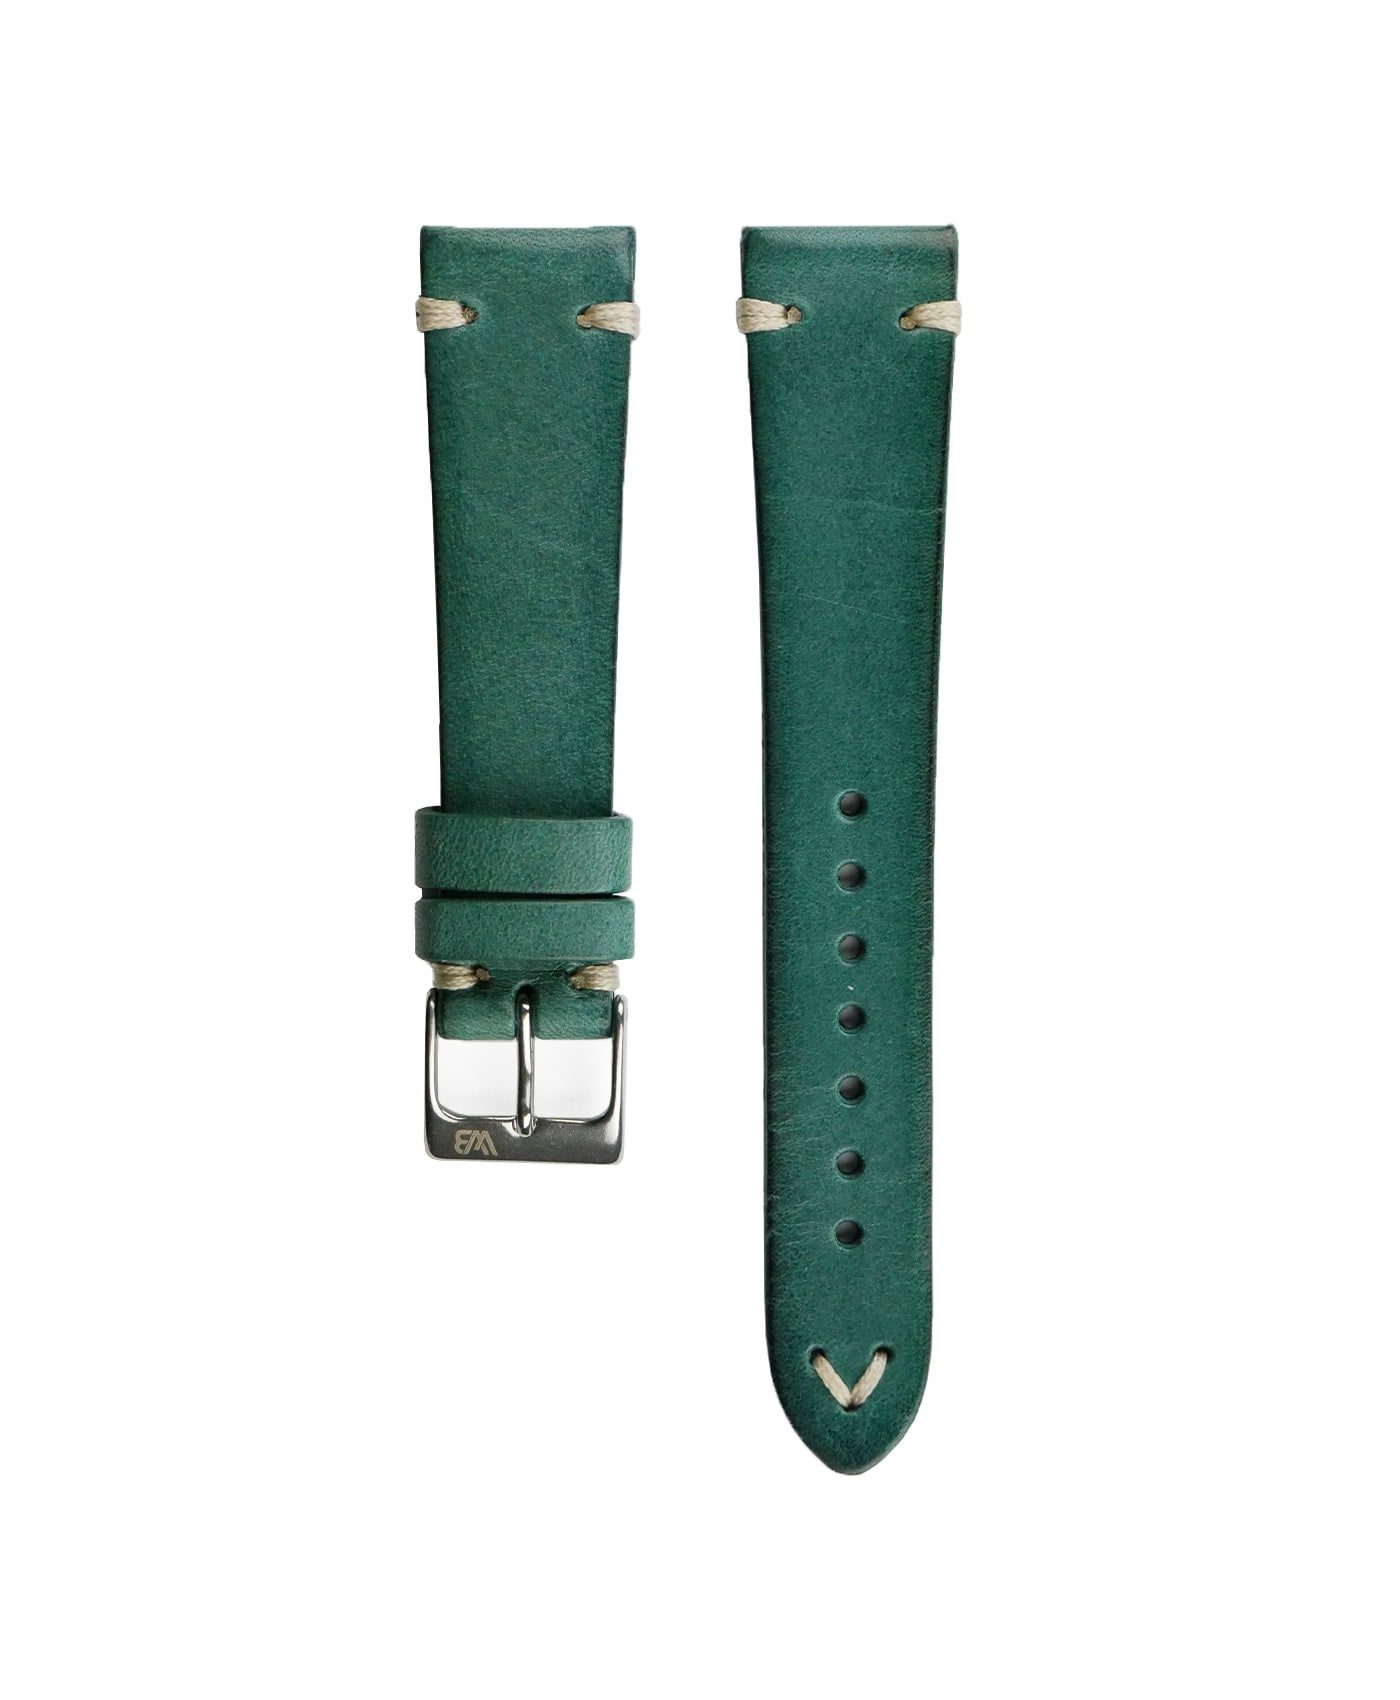 WB original premium vintage leather watch strap petrol green front